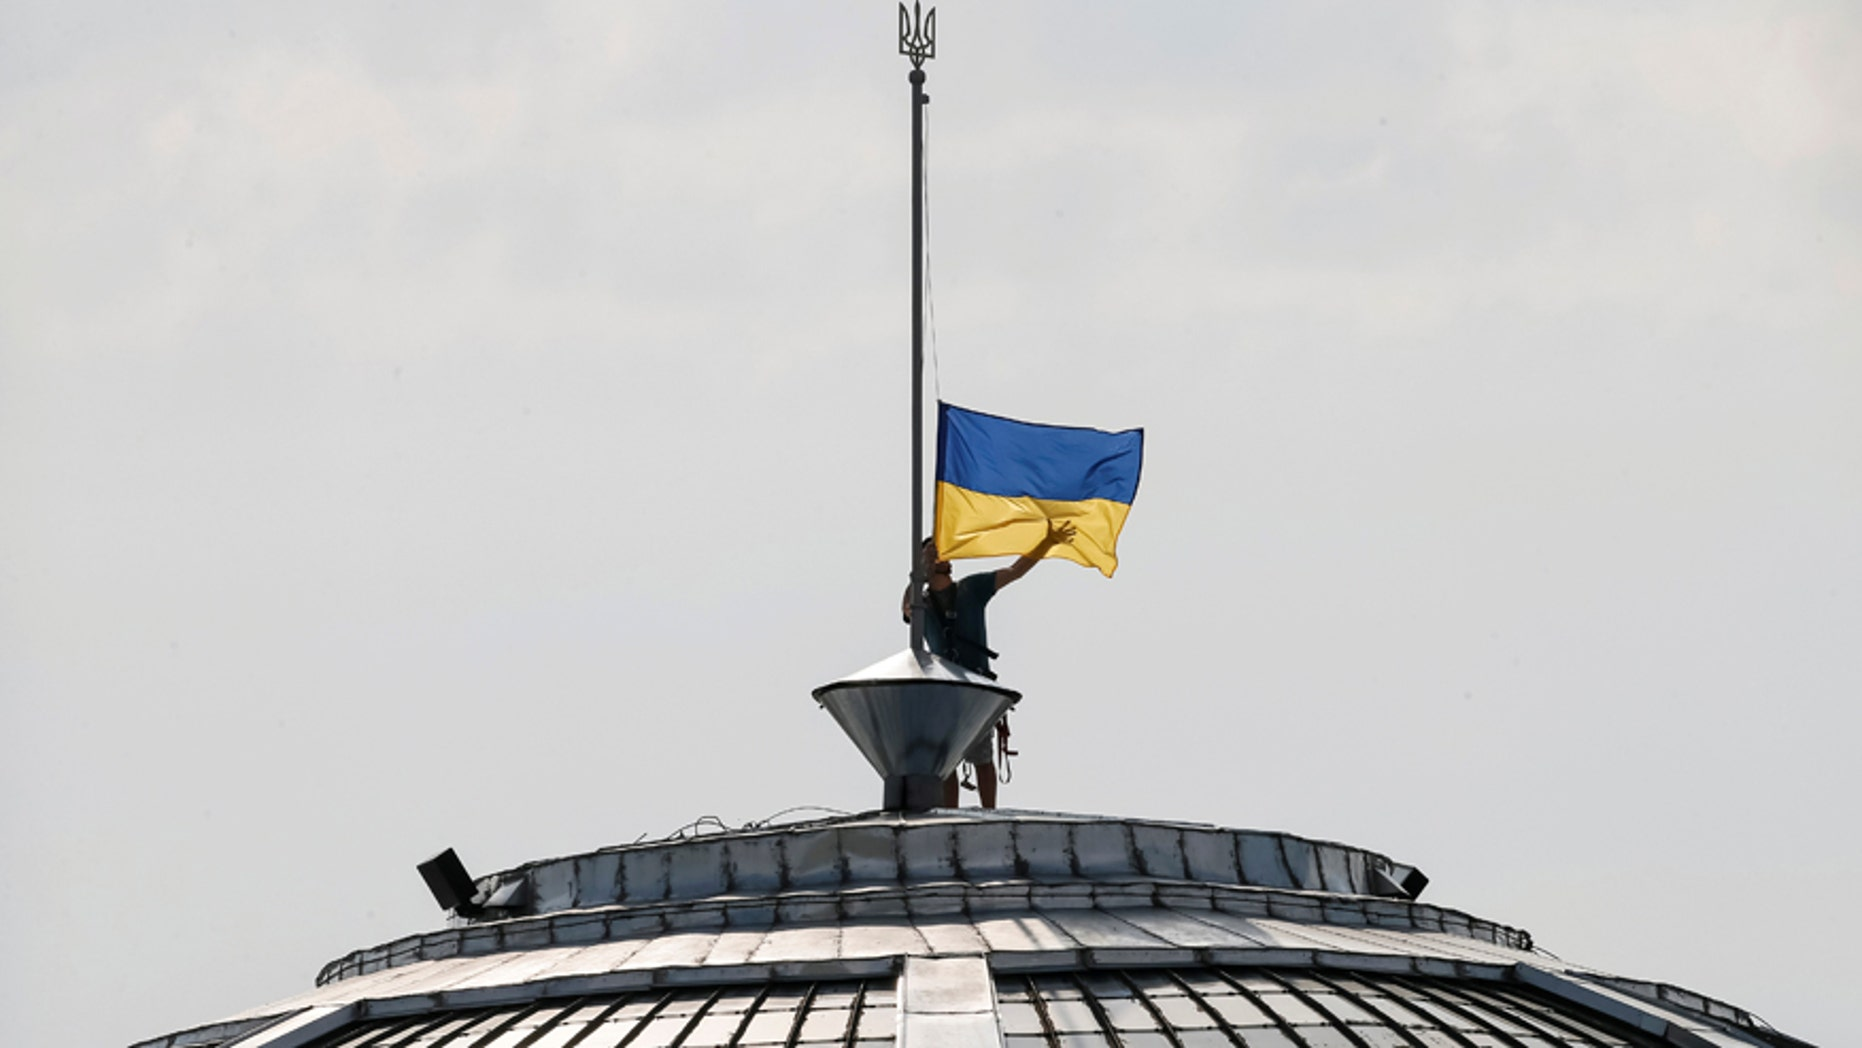 File photo - A climber installs the Ukrainian national flag on a roof, marking the Day of the State Flag, on the eve of the Independence Day, in Kiev, Ukraine, Aug. 23, 2016. (REUTERS/Gleb Garanich)